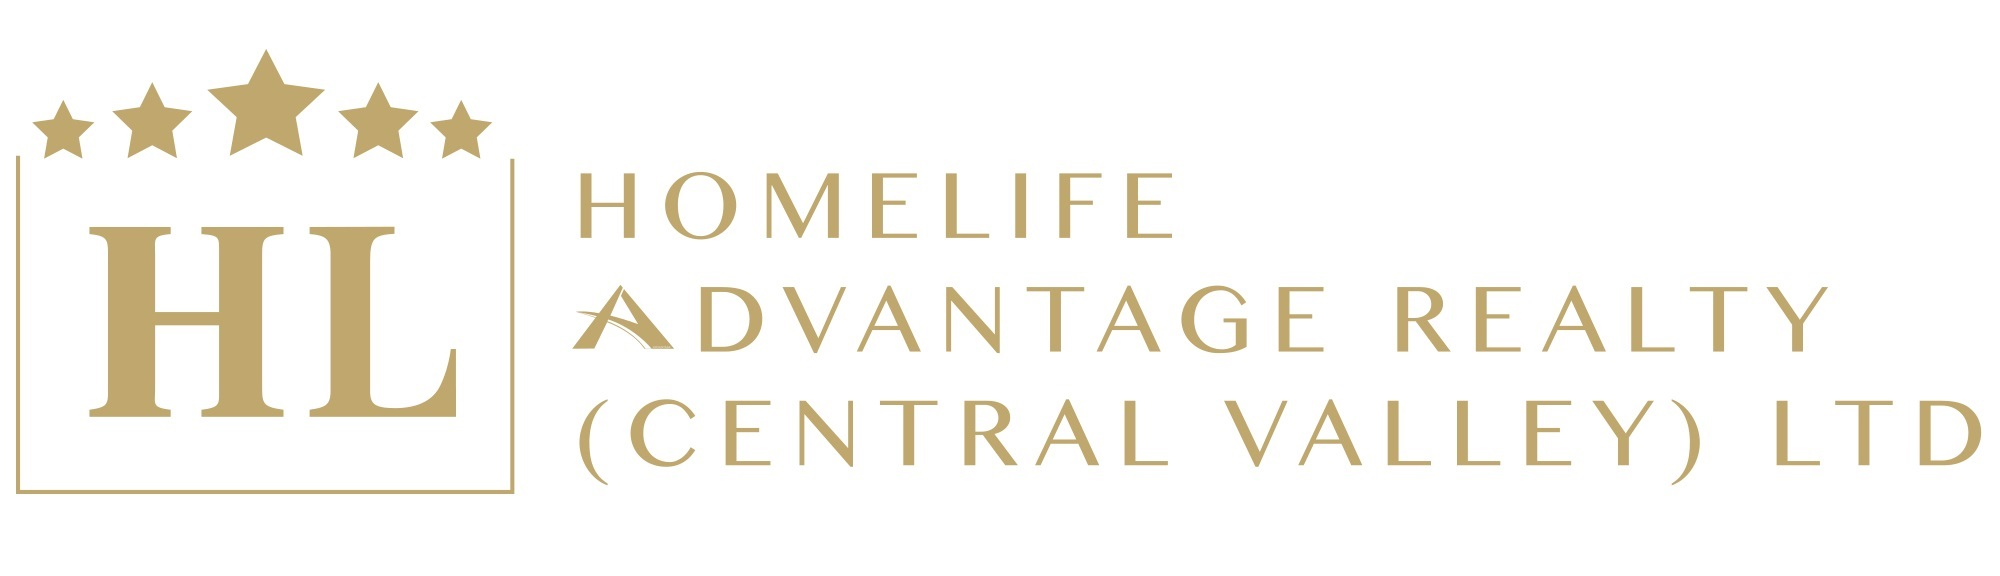 HomeLife Advantage Realty Central Valley Ltd